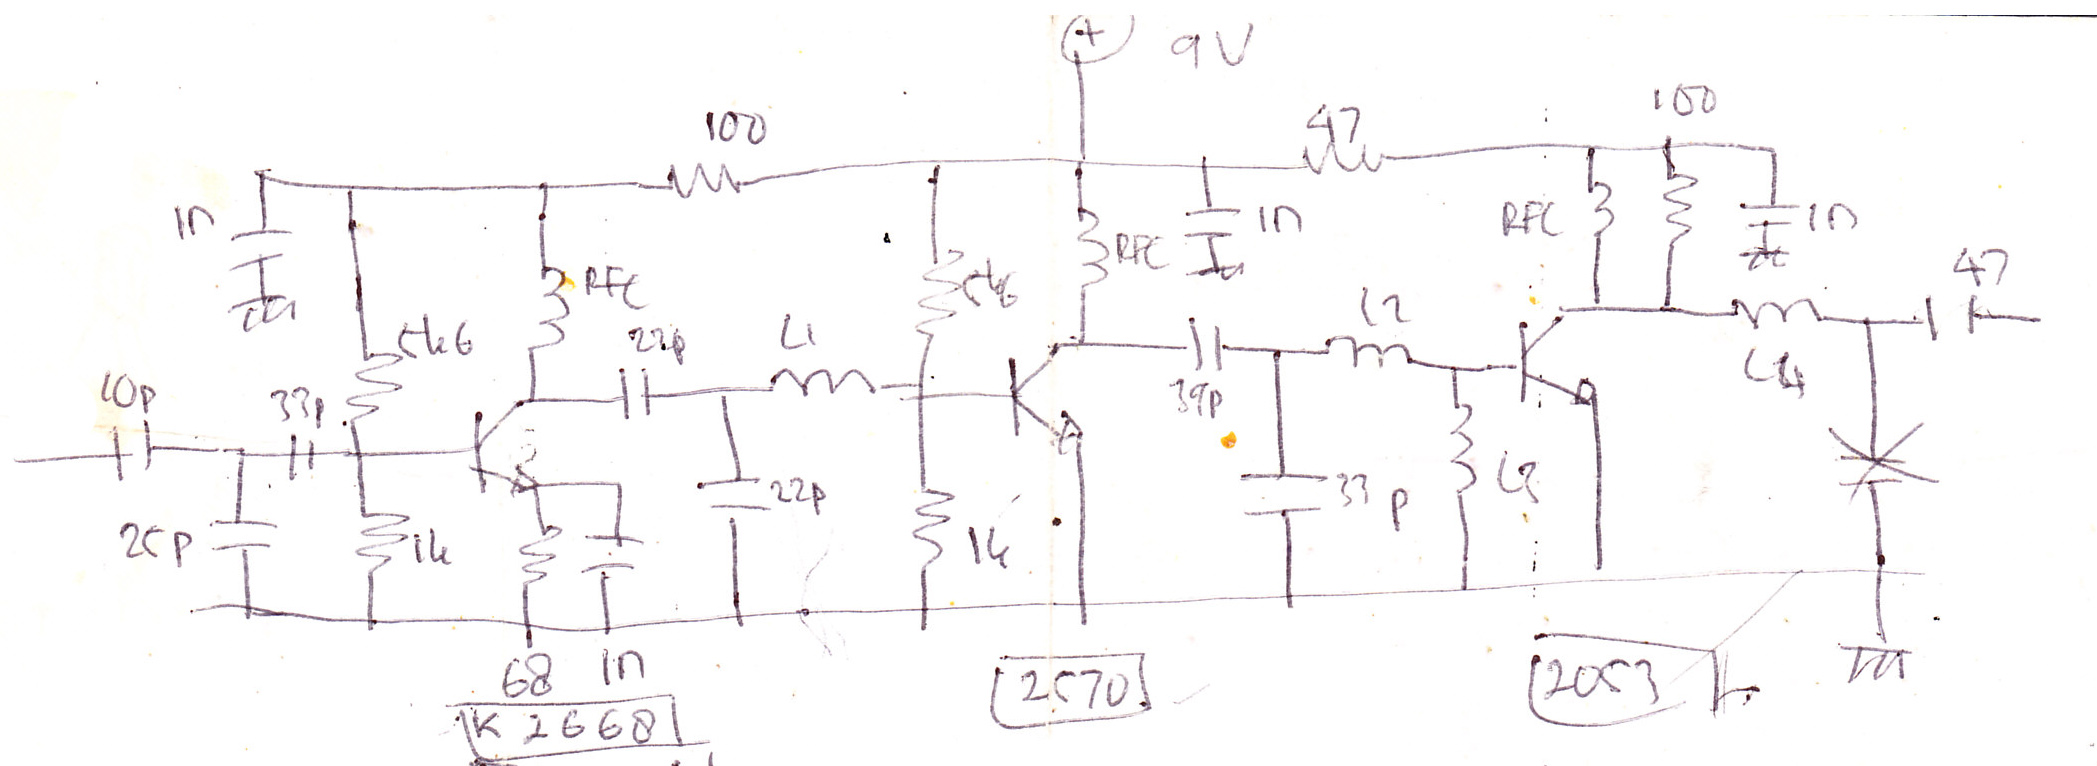 RF Amplifier with MOSFET K2668, 2570, 2053 circuit diagram